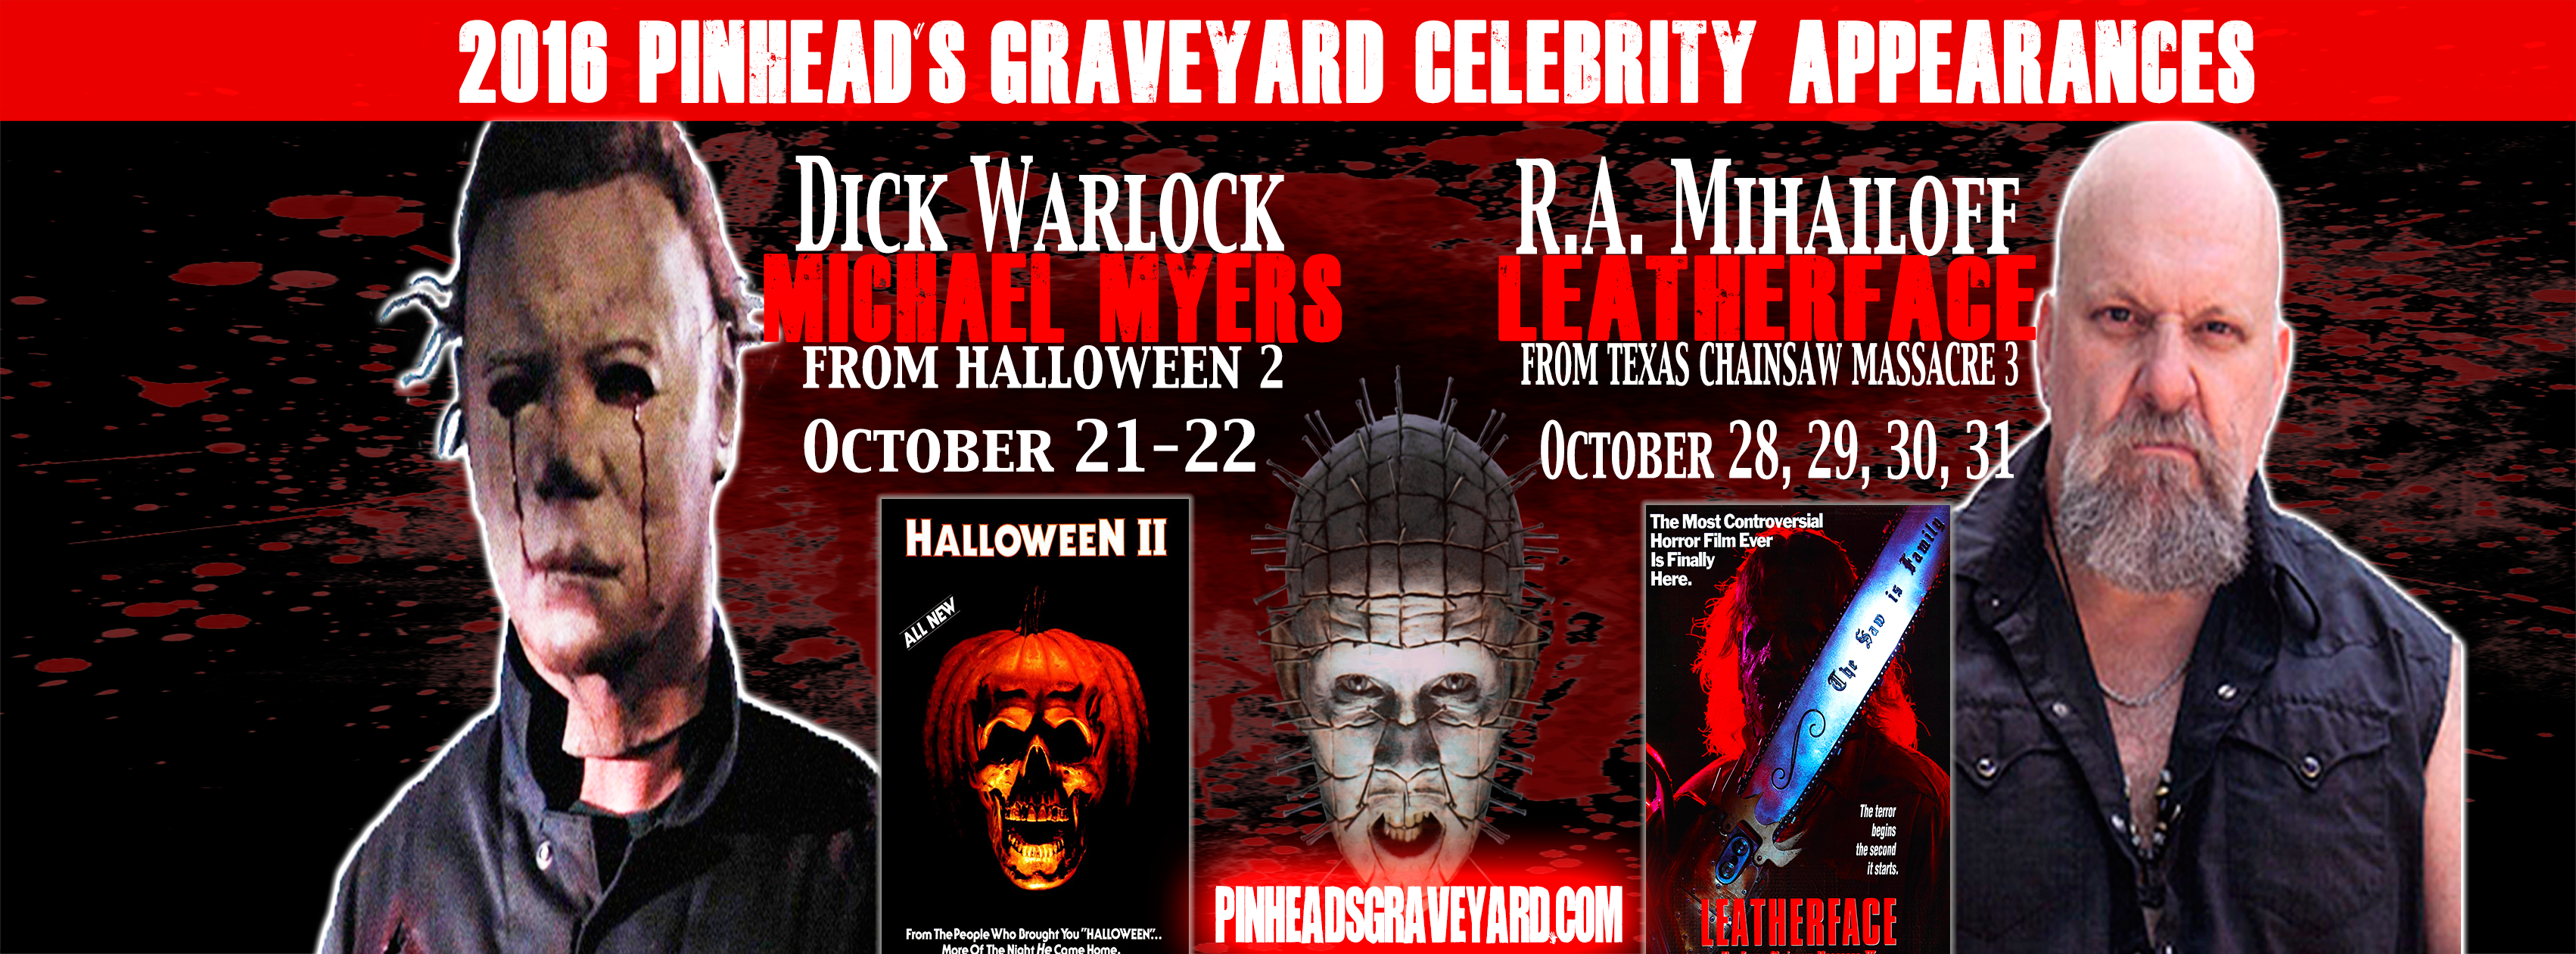 2016 celebrity appearances announced! | pinhead's graveyard